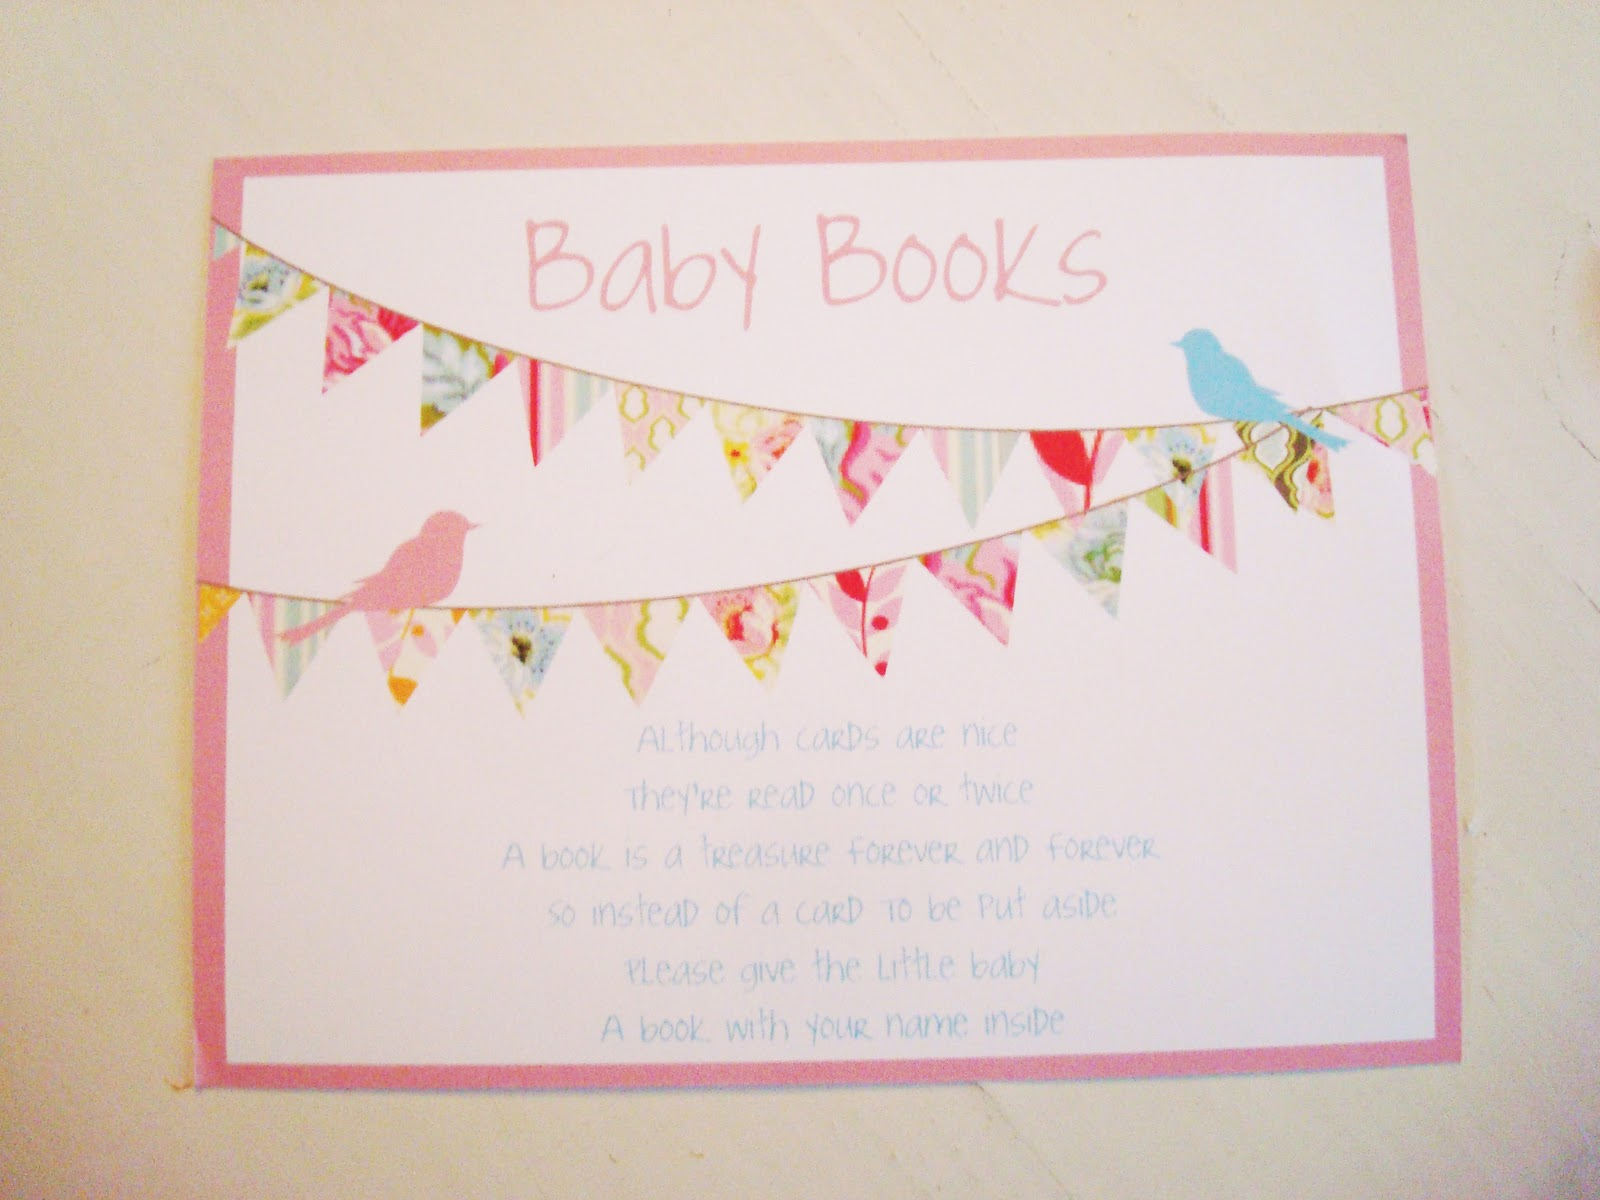 guest to bring a baby book instead of a card using a cute poem baby